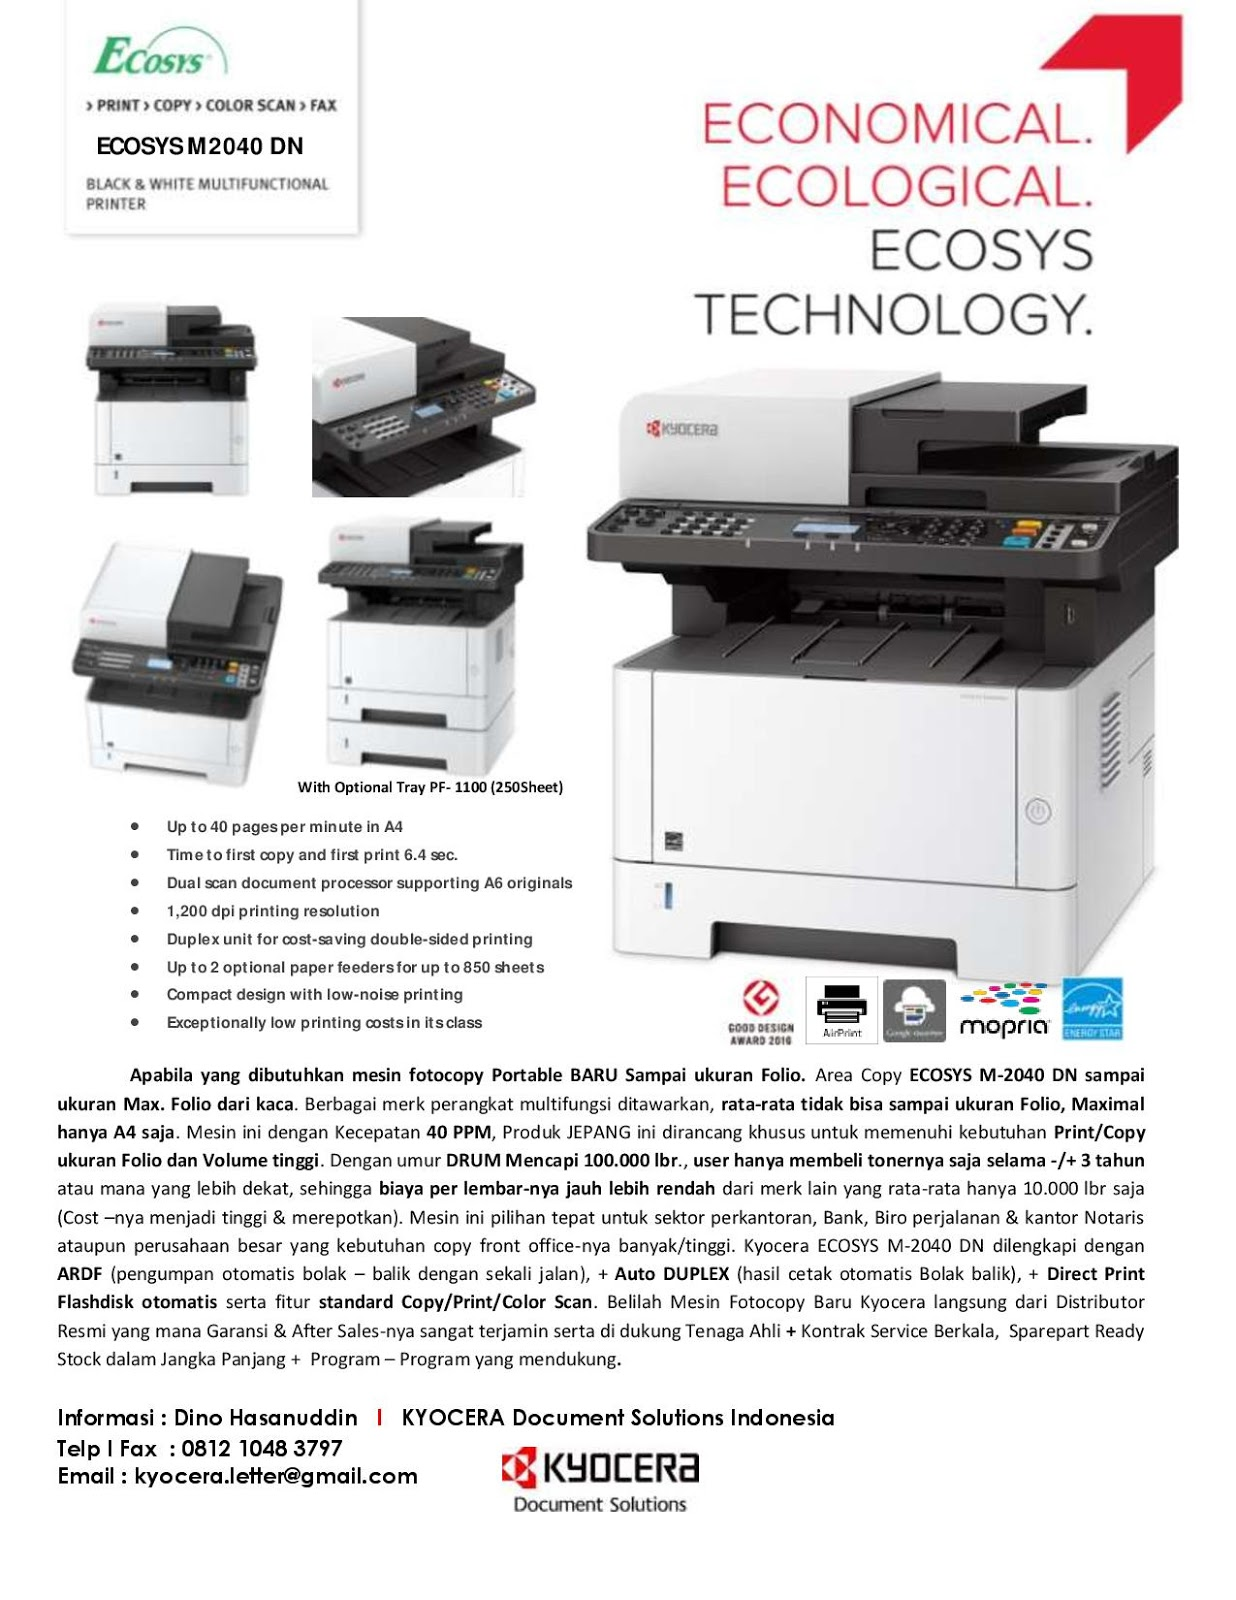 Kyocera ECOSYS FS-4100DN Printer PCL5e/PCL6/KPDL Drivers for Mac